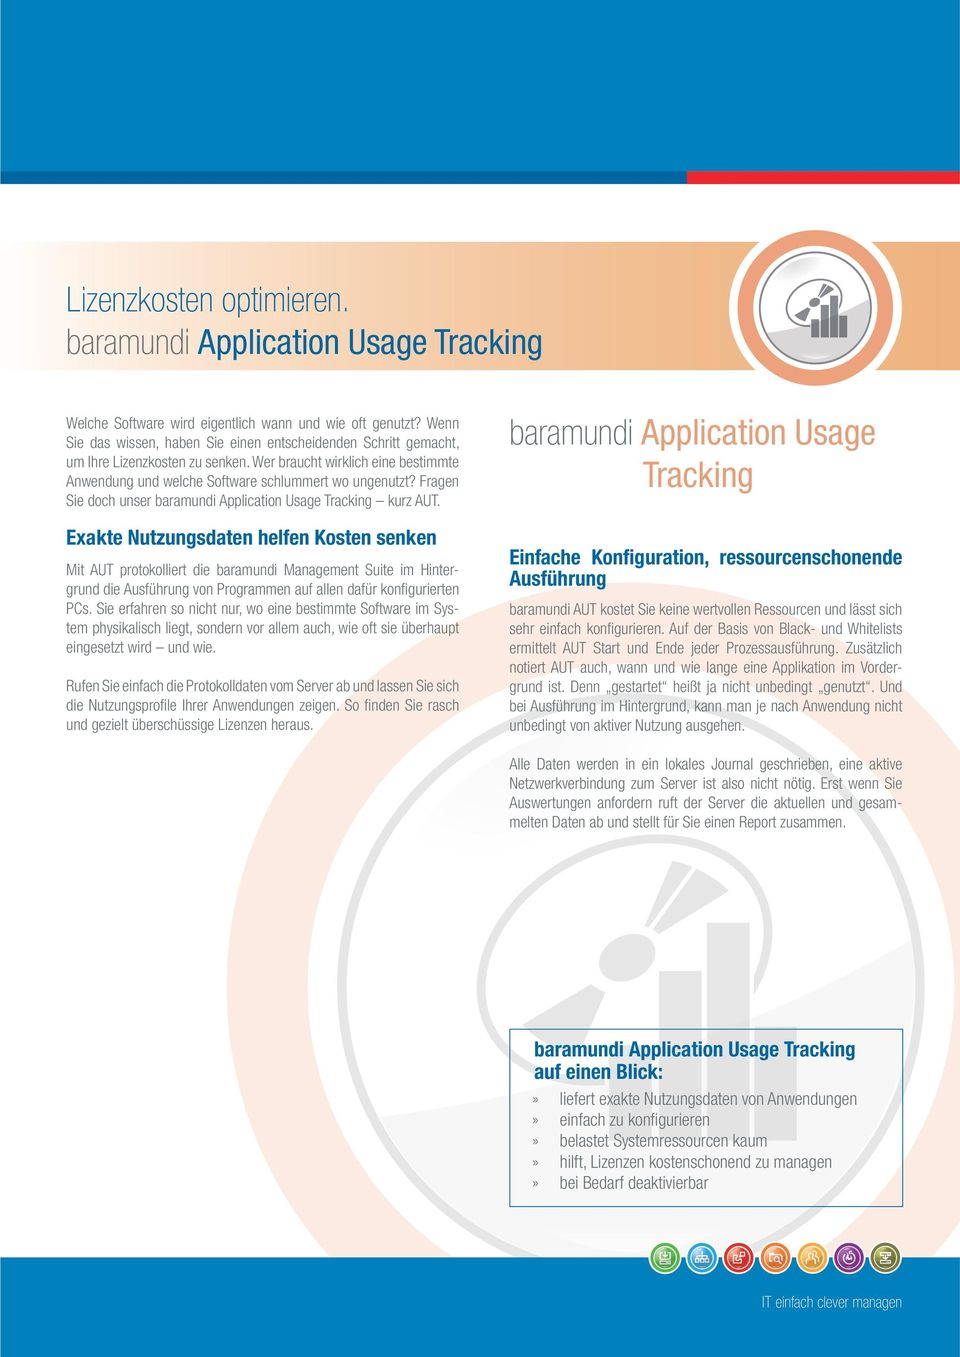 Fragen Sie doch unser baramundi Application Usage Tracking kurz AUT.